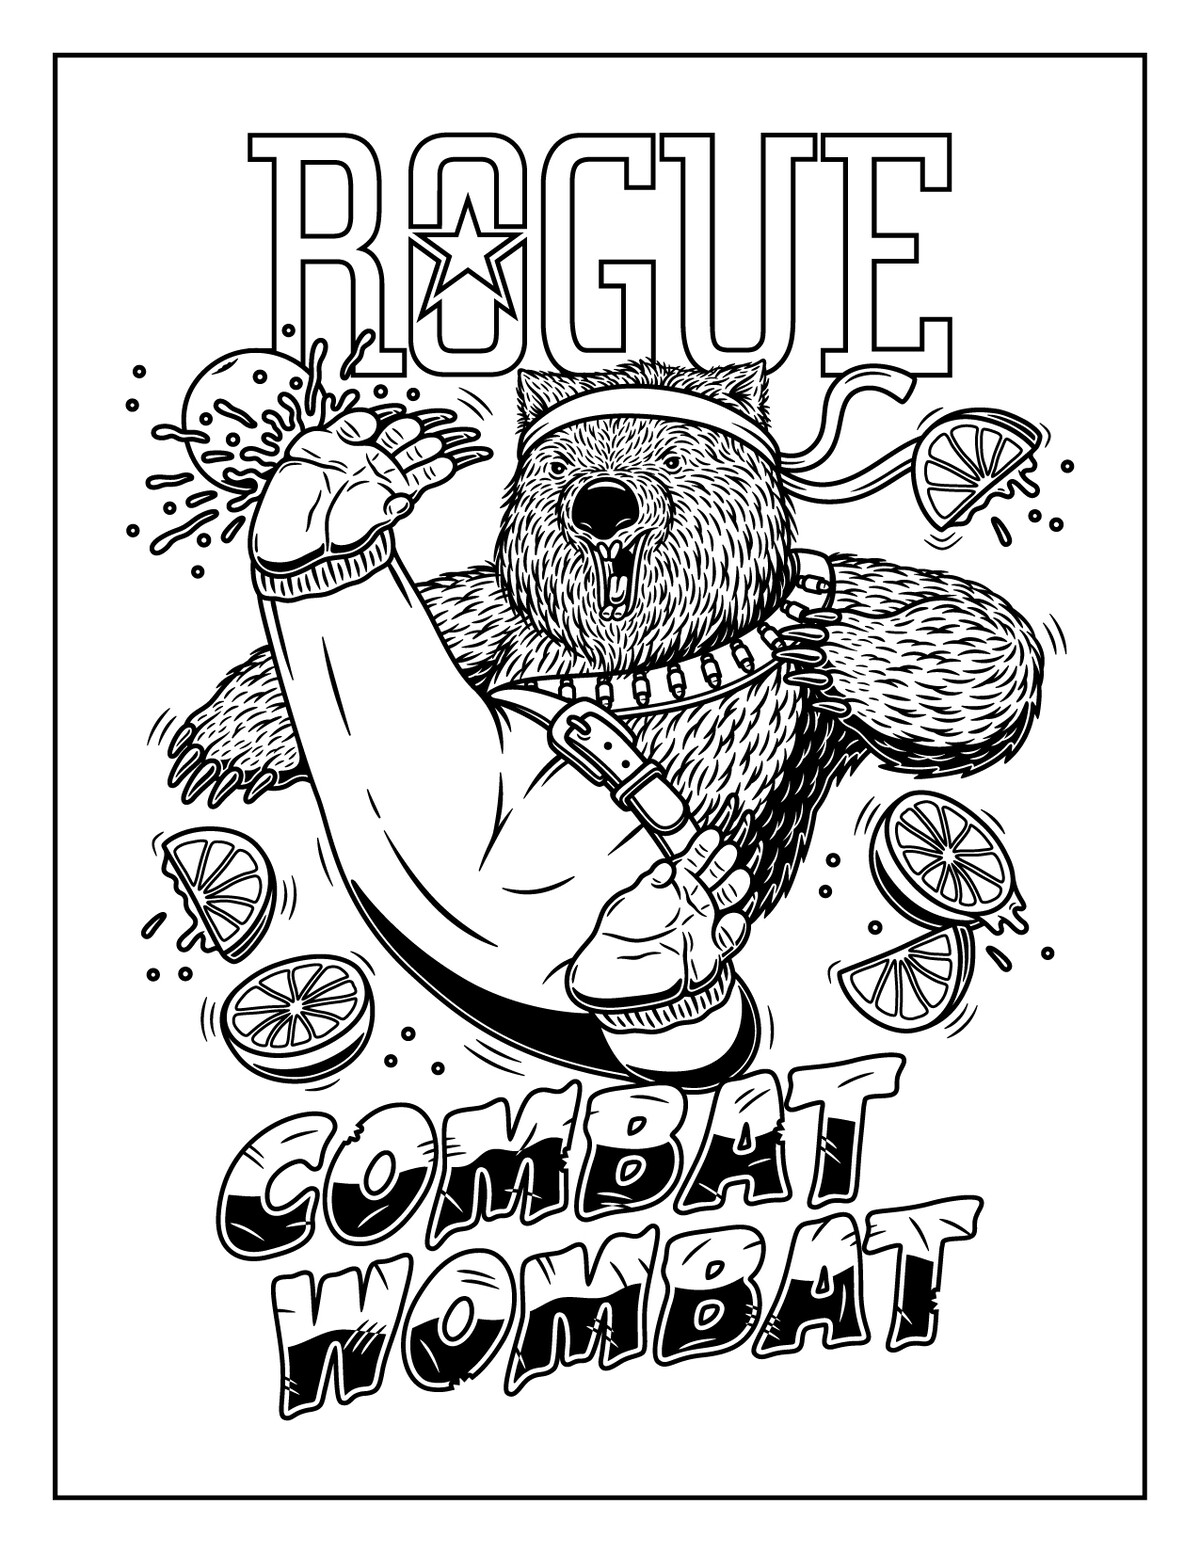 combat-wombat_coloring-page_with-border